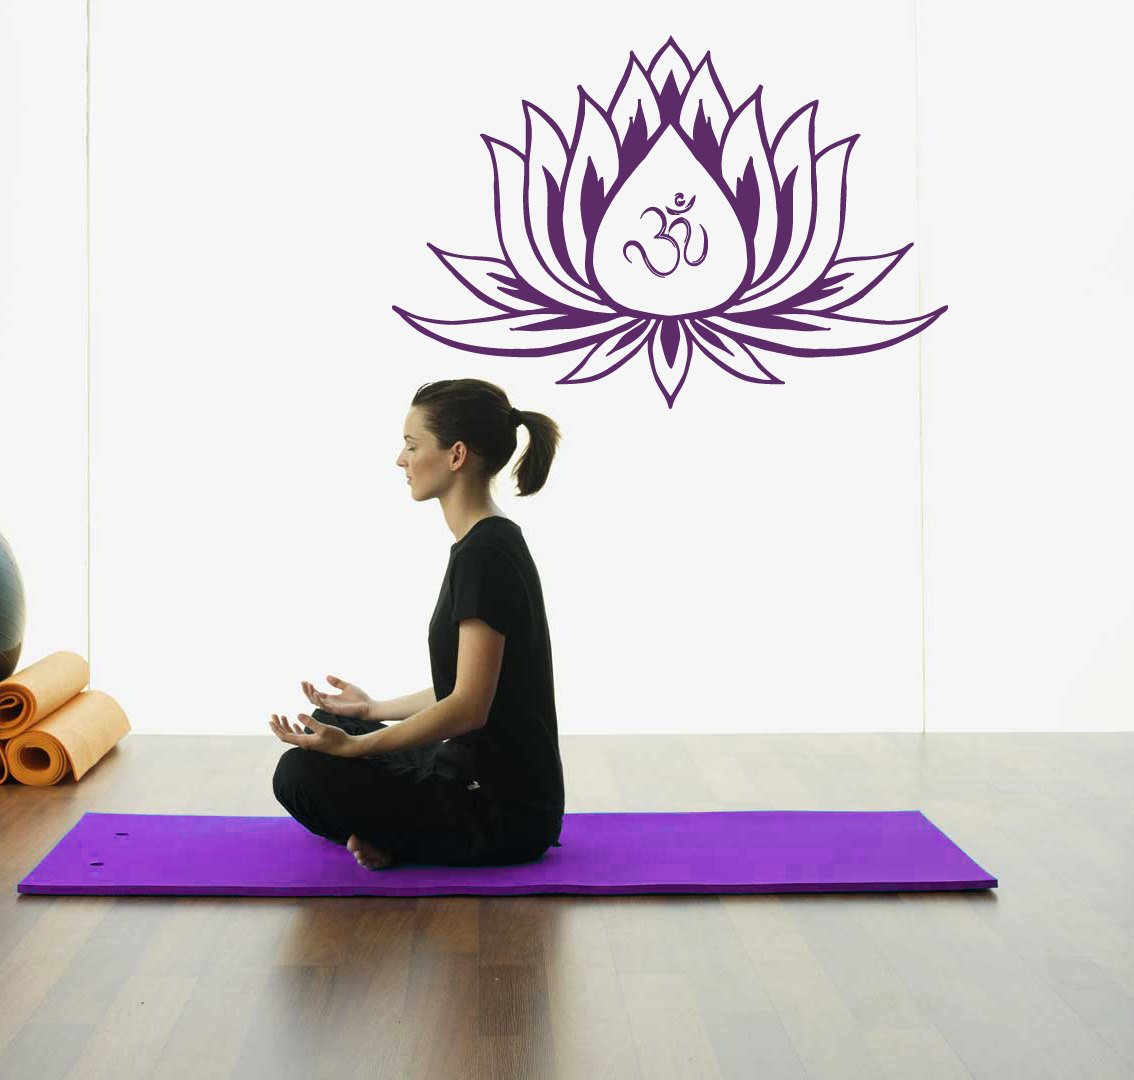 amazon com lotus flower wall decals vinyl decal with om sign yoga amazon com lotus flower wall decals vinyl decal with om sign yoga meditation art decor removable stylish sticker mural unique design for room l623 arts